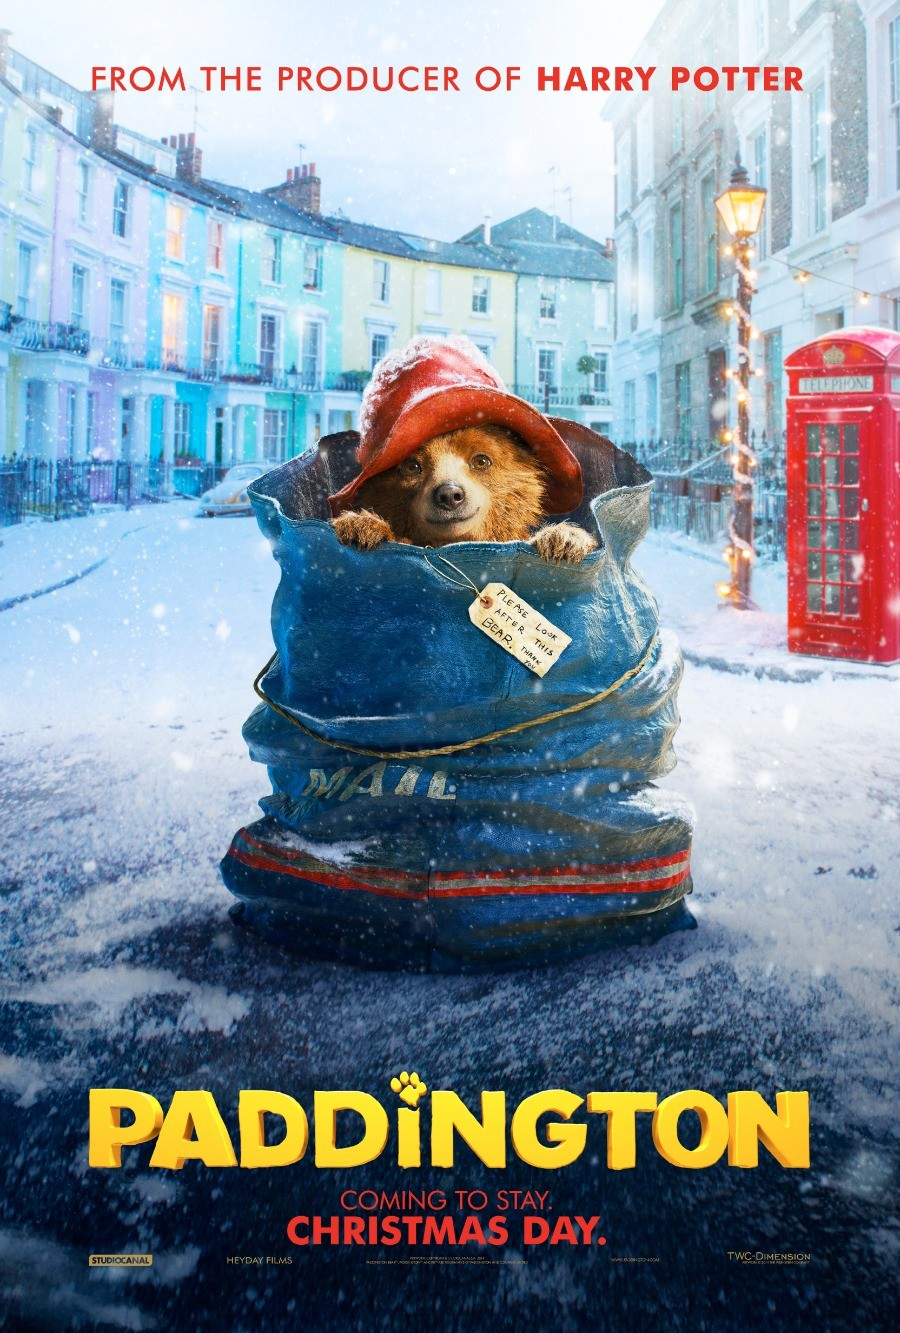 PADDINGTON-Official Poster Banner PROMO XLG-29AGOSTO2014-1